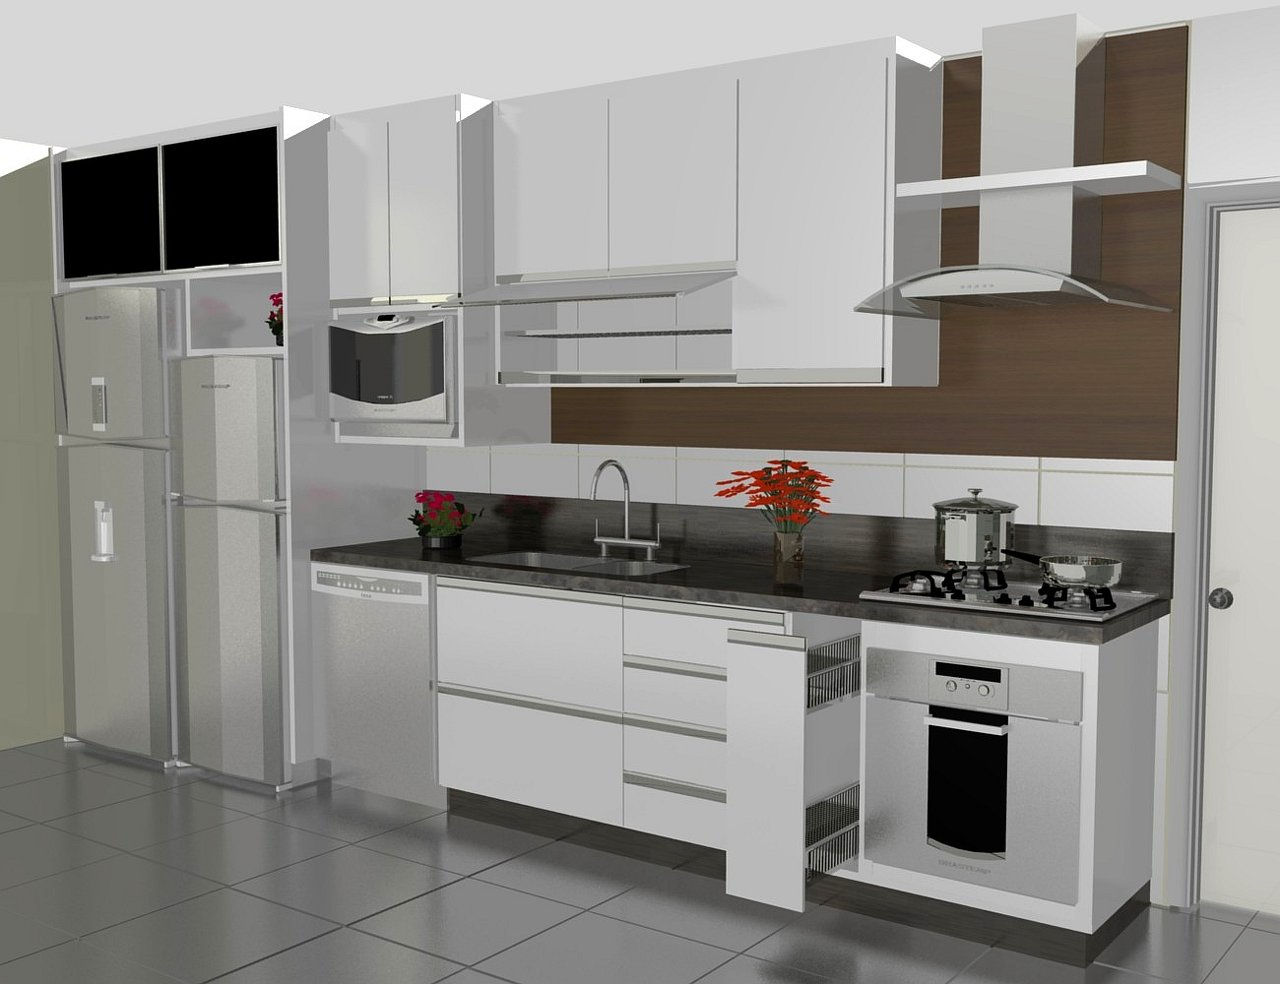 kitchen design ideas for small kitchens.jpg #5D4839 1280 984